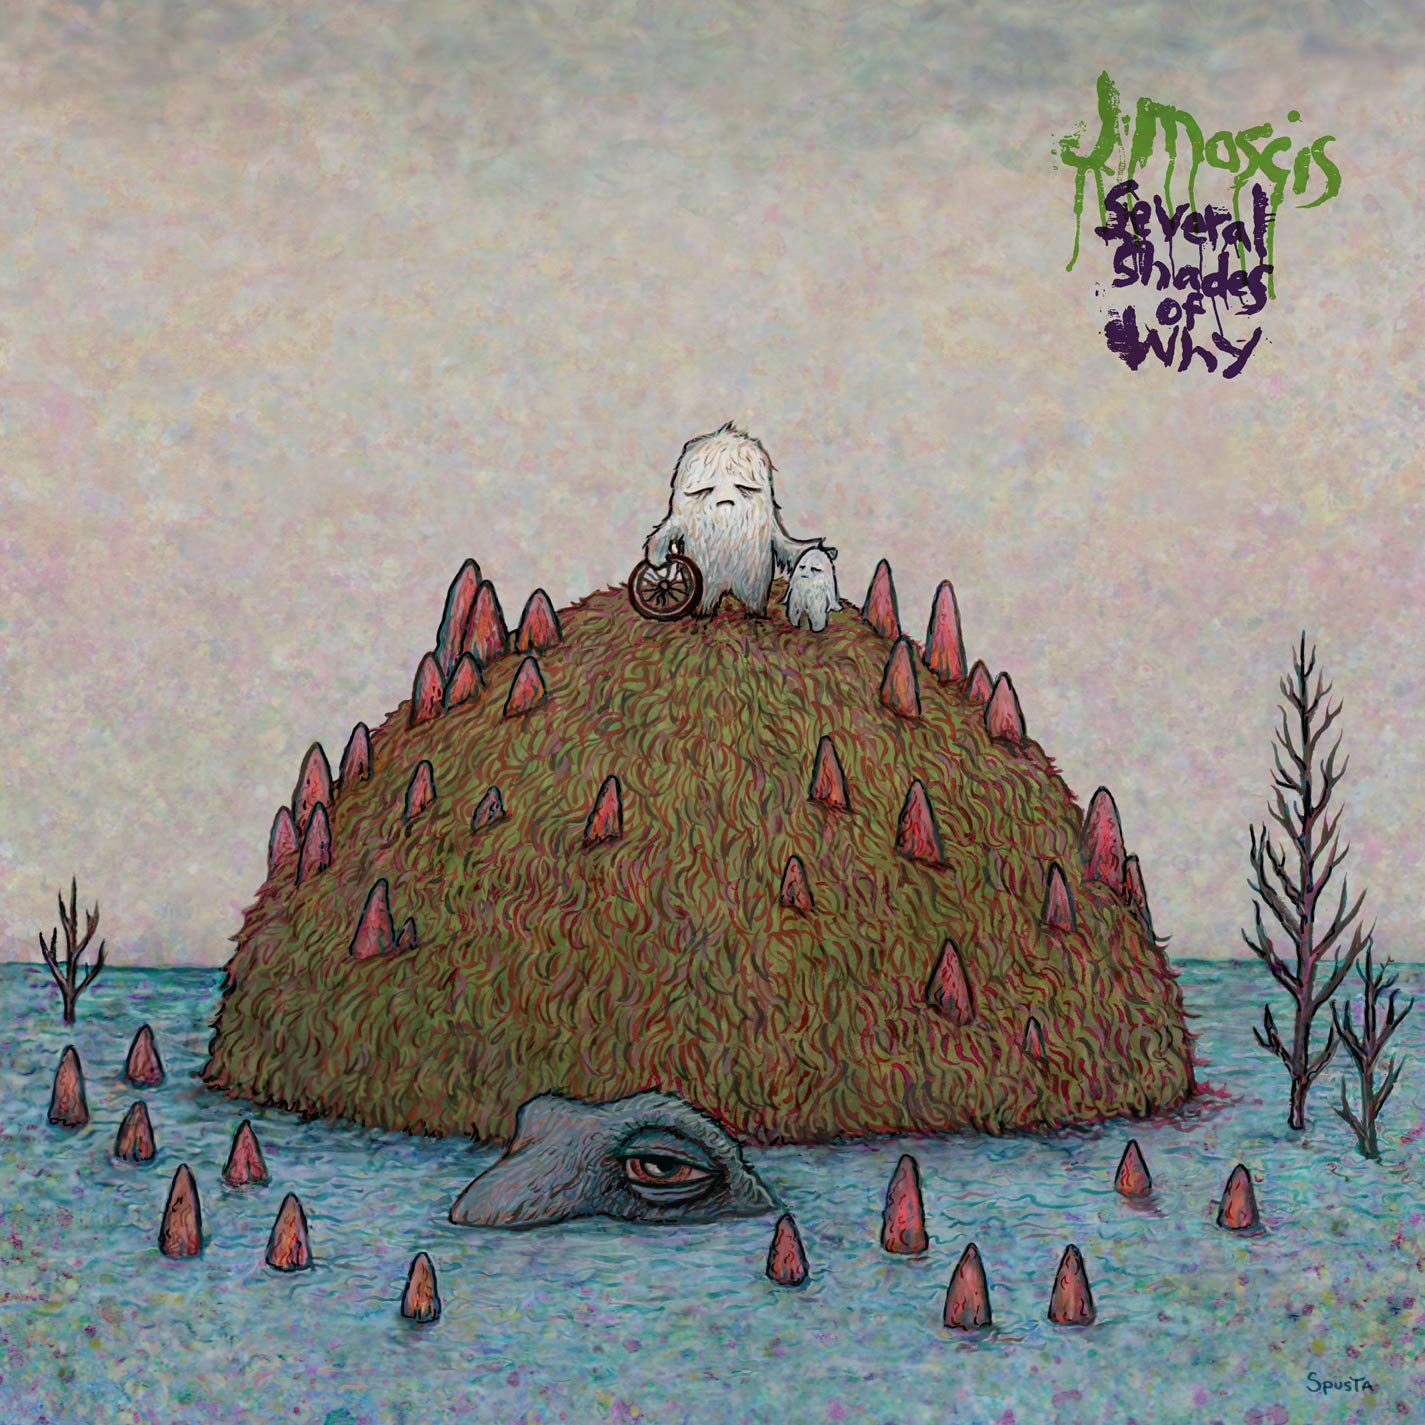 Cassette : J Mascis - Several Shades Of Why (Cassette)